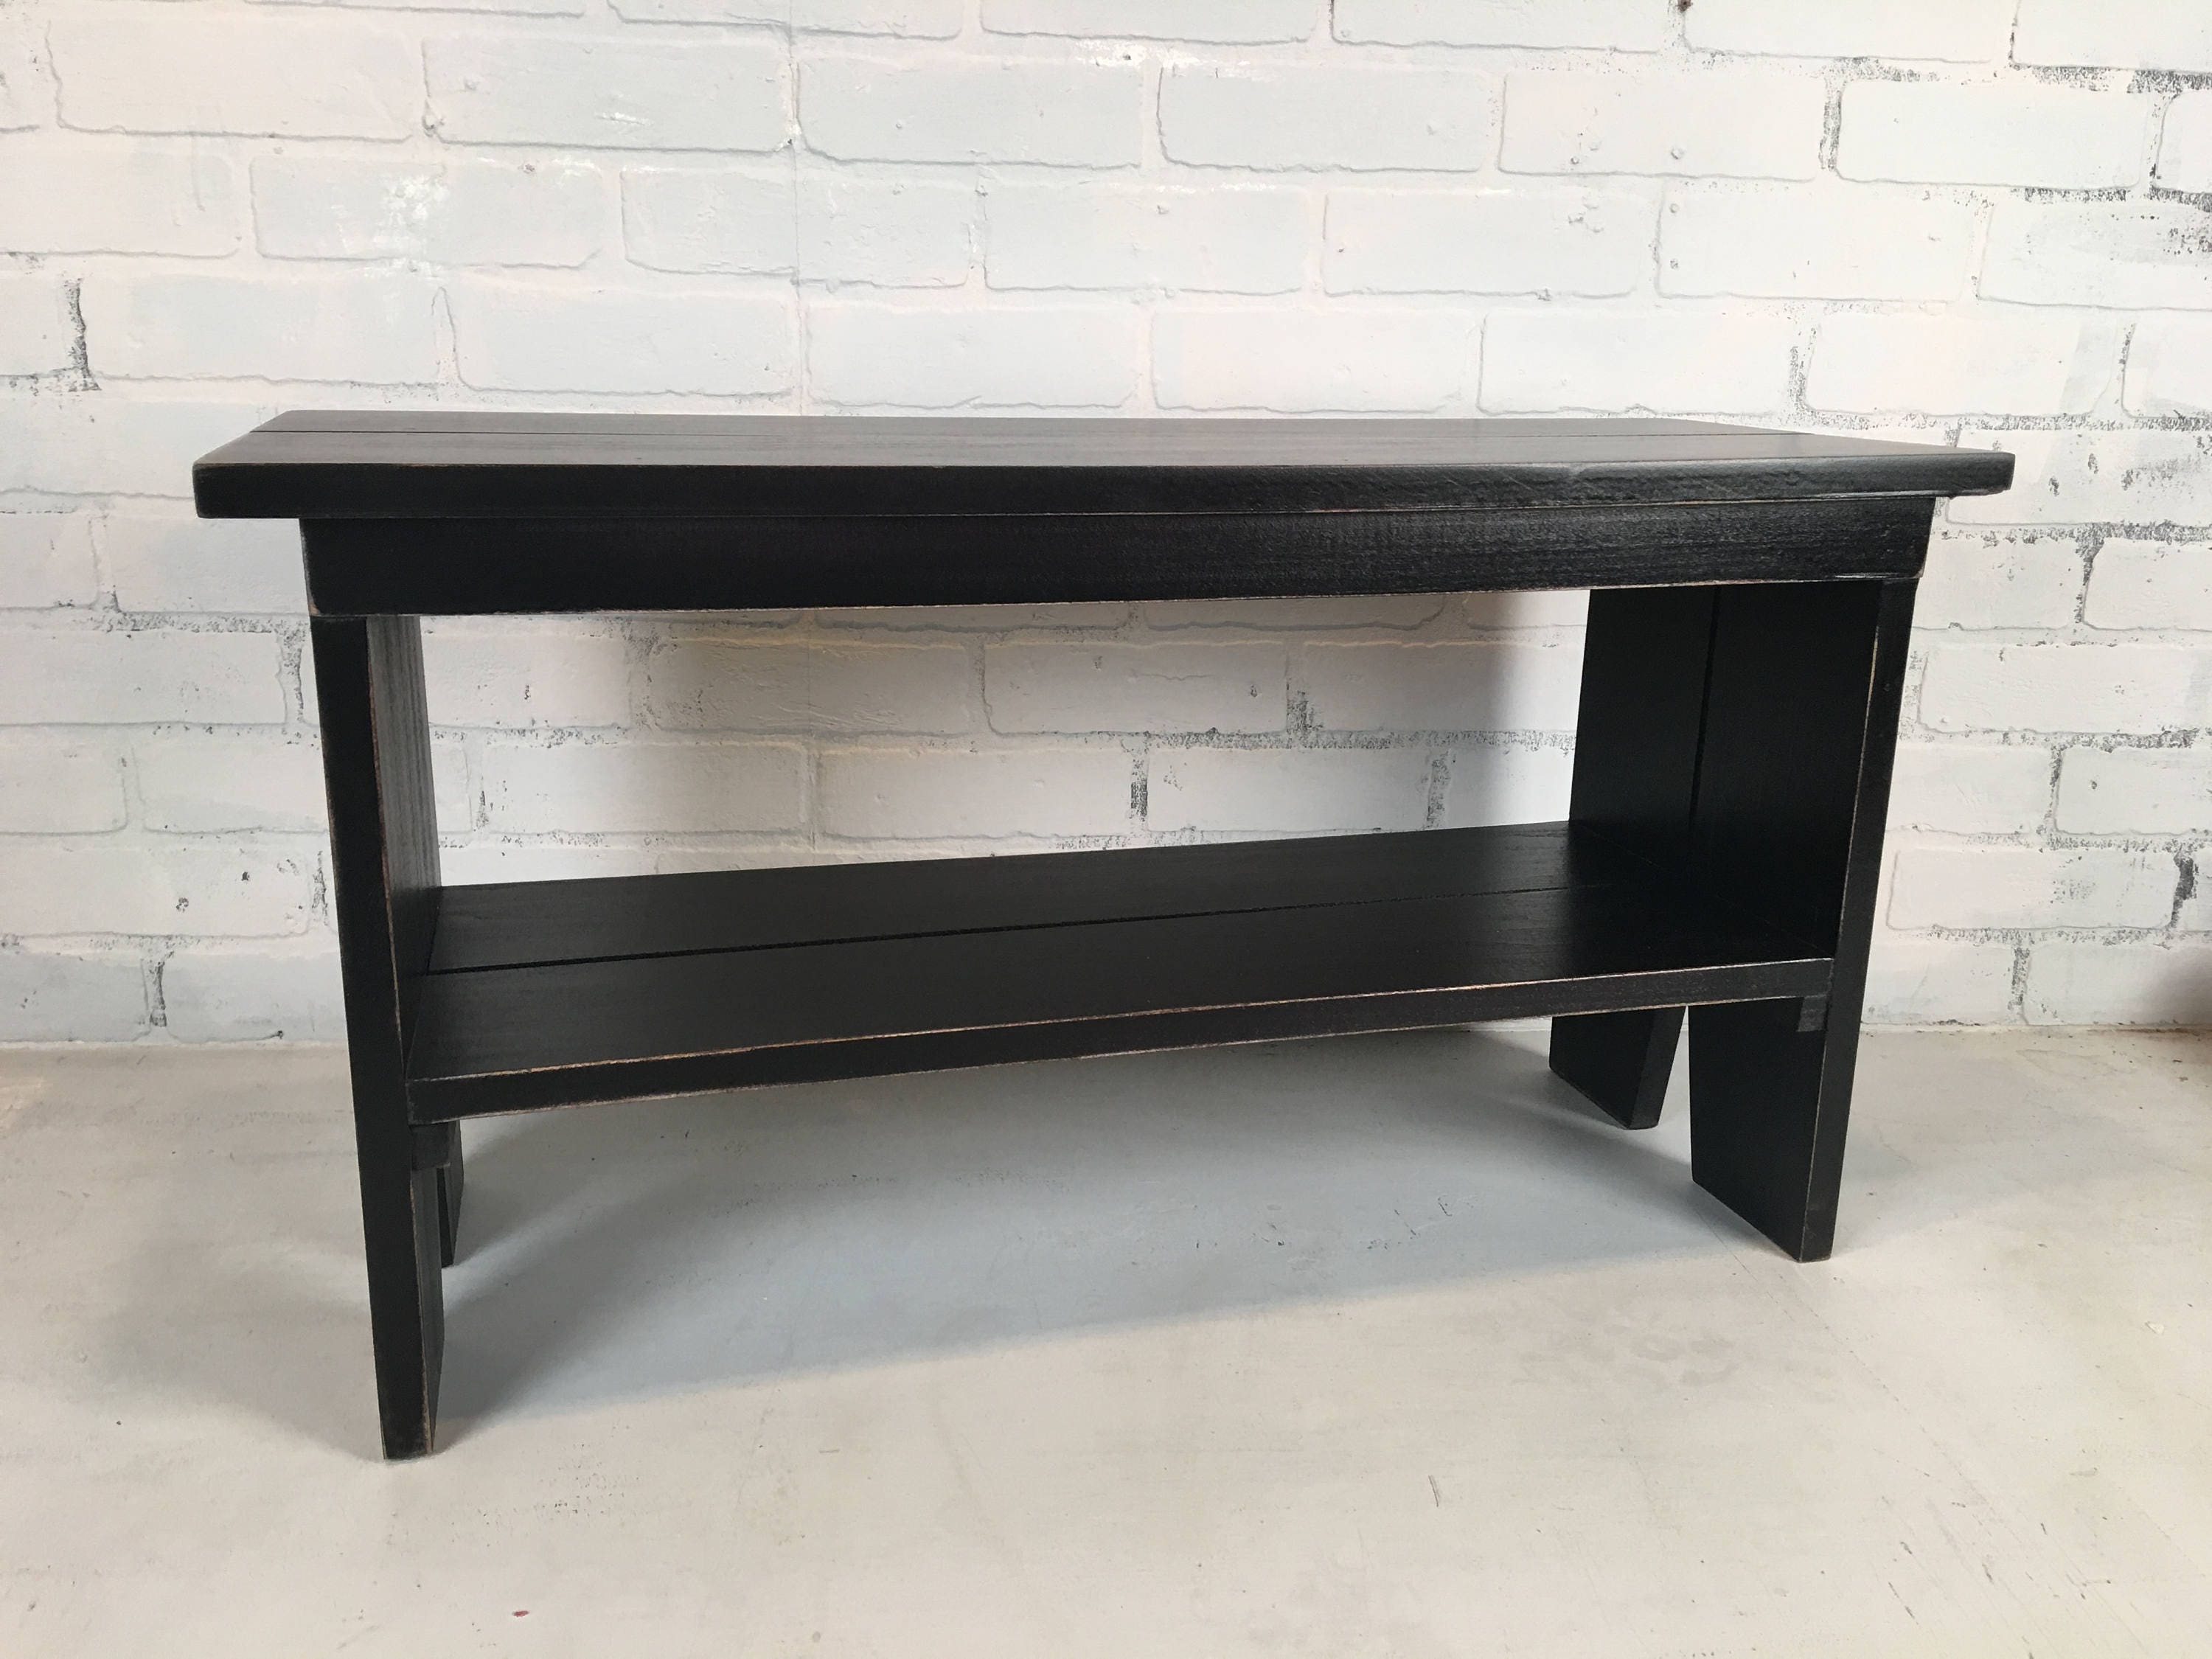 Wooden Bench with Vintage Black Finish Indoor Cottage Seating